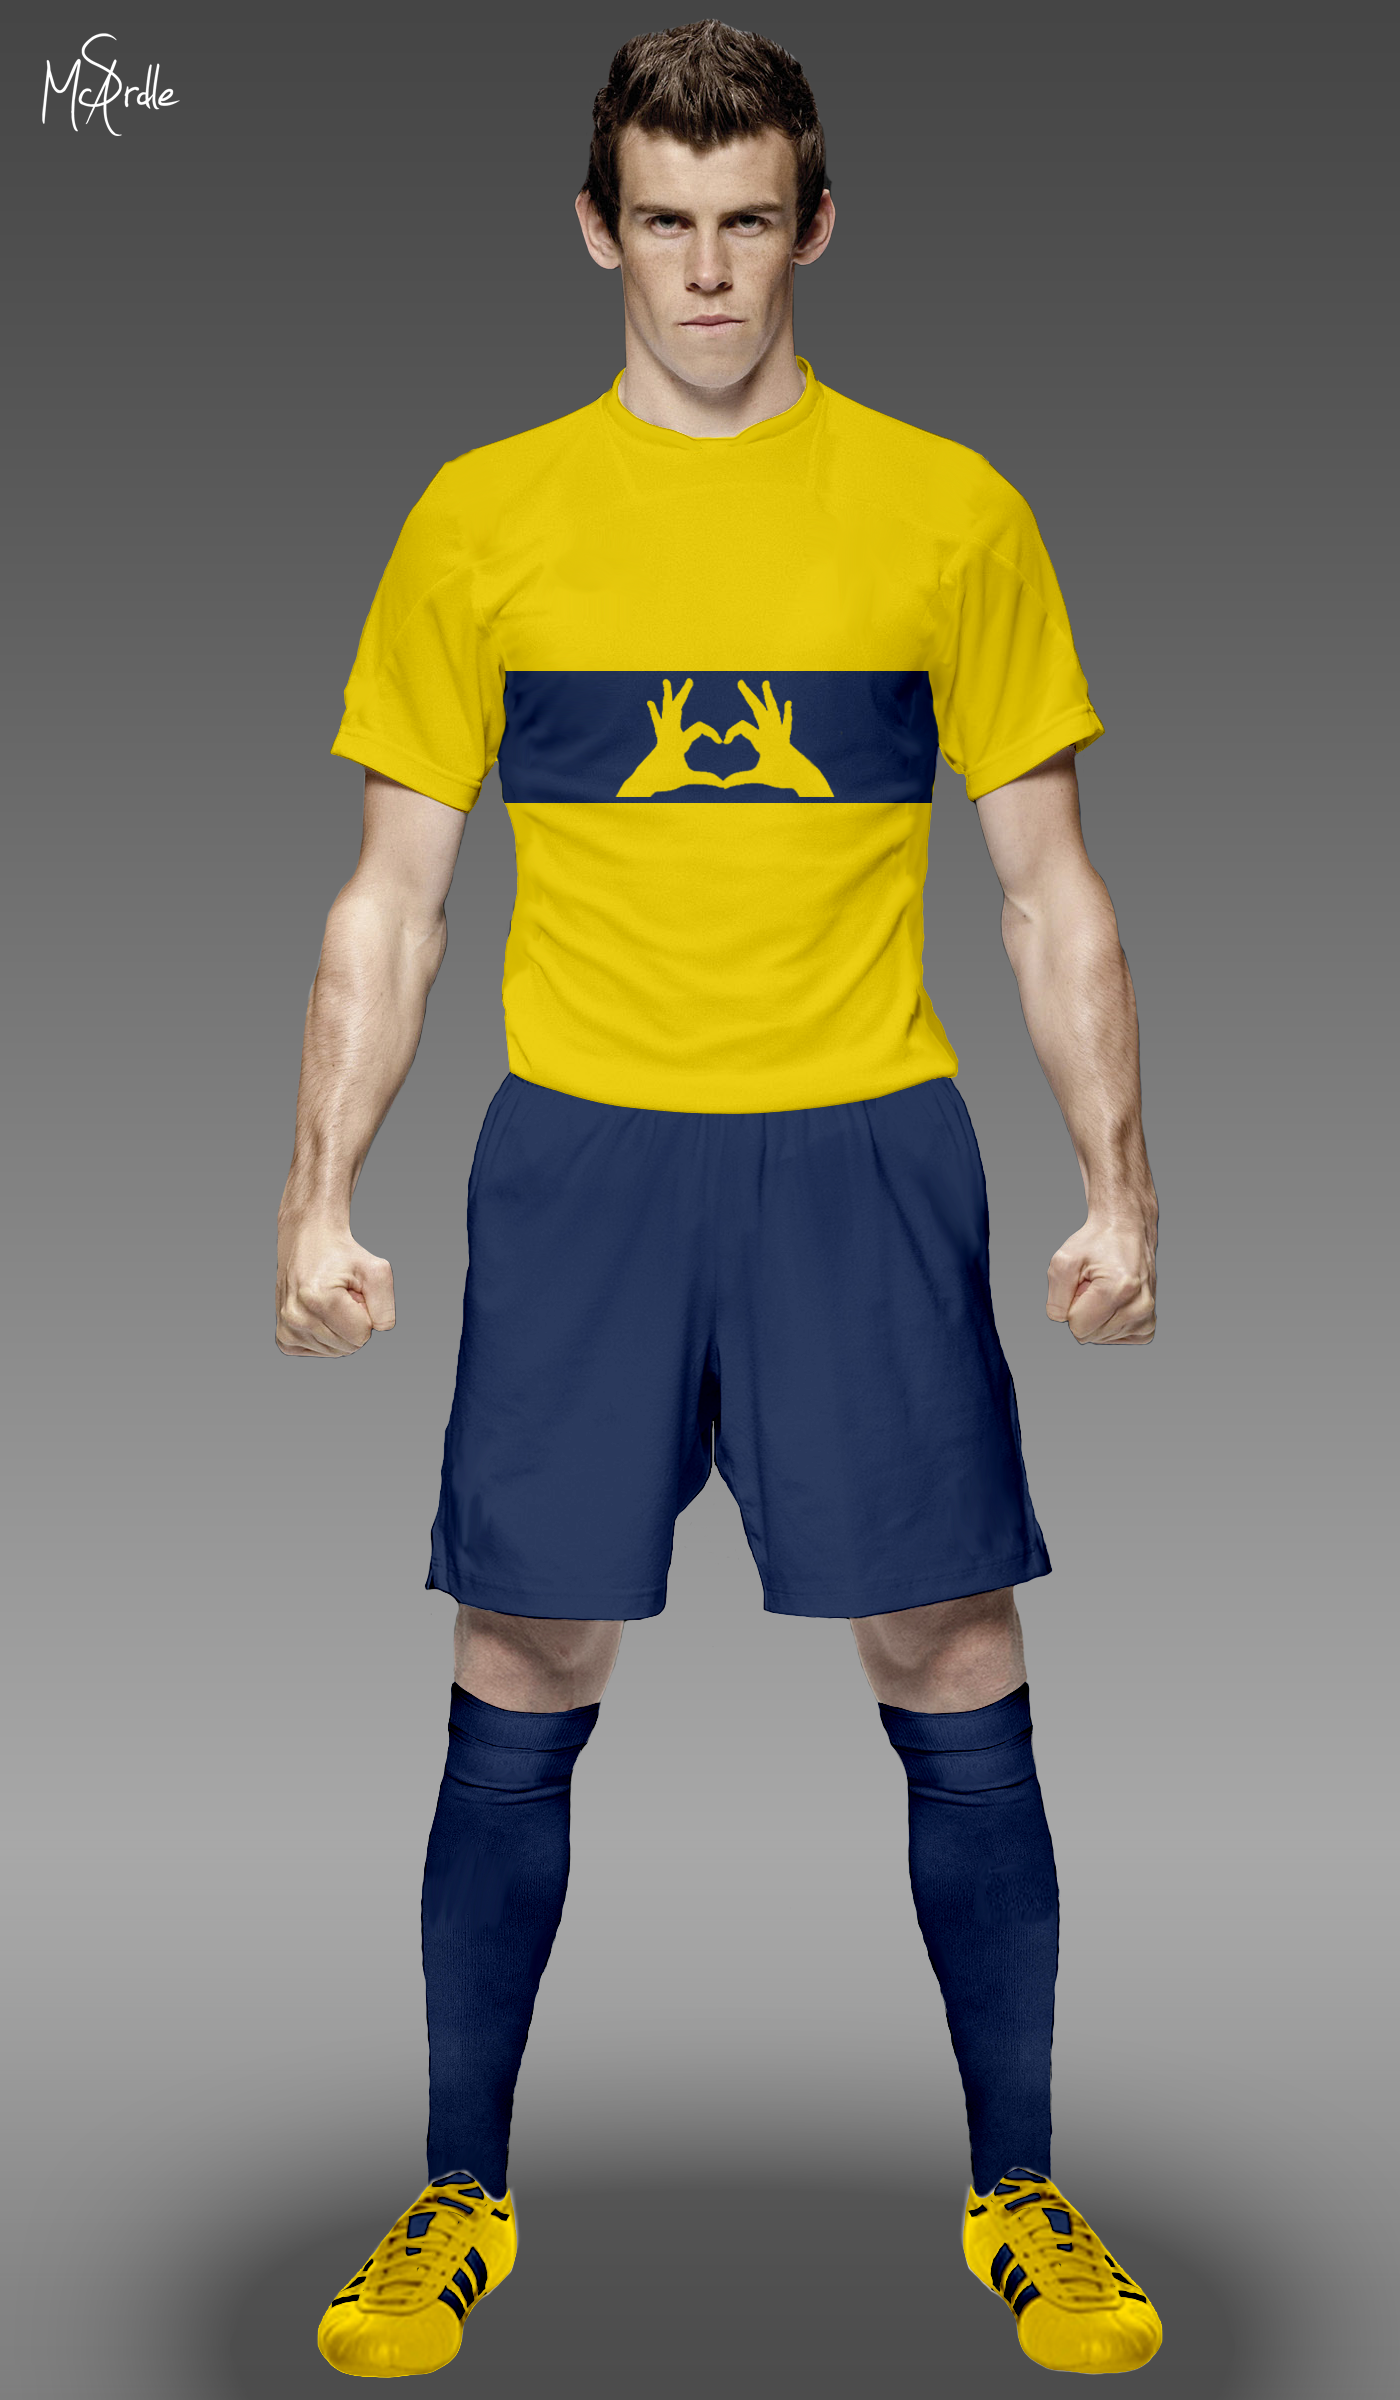 detailed look c4d1c 9e2a7 Gareth Bale Football Photoshop Template by marble21 on ...